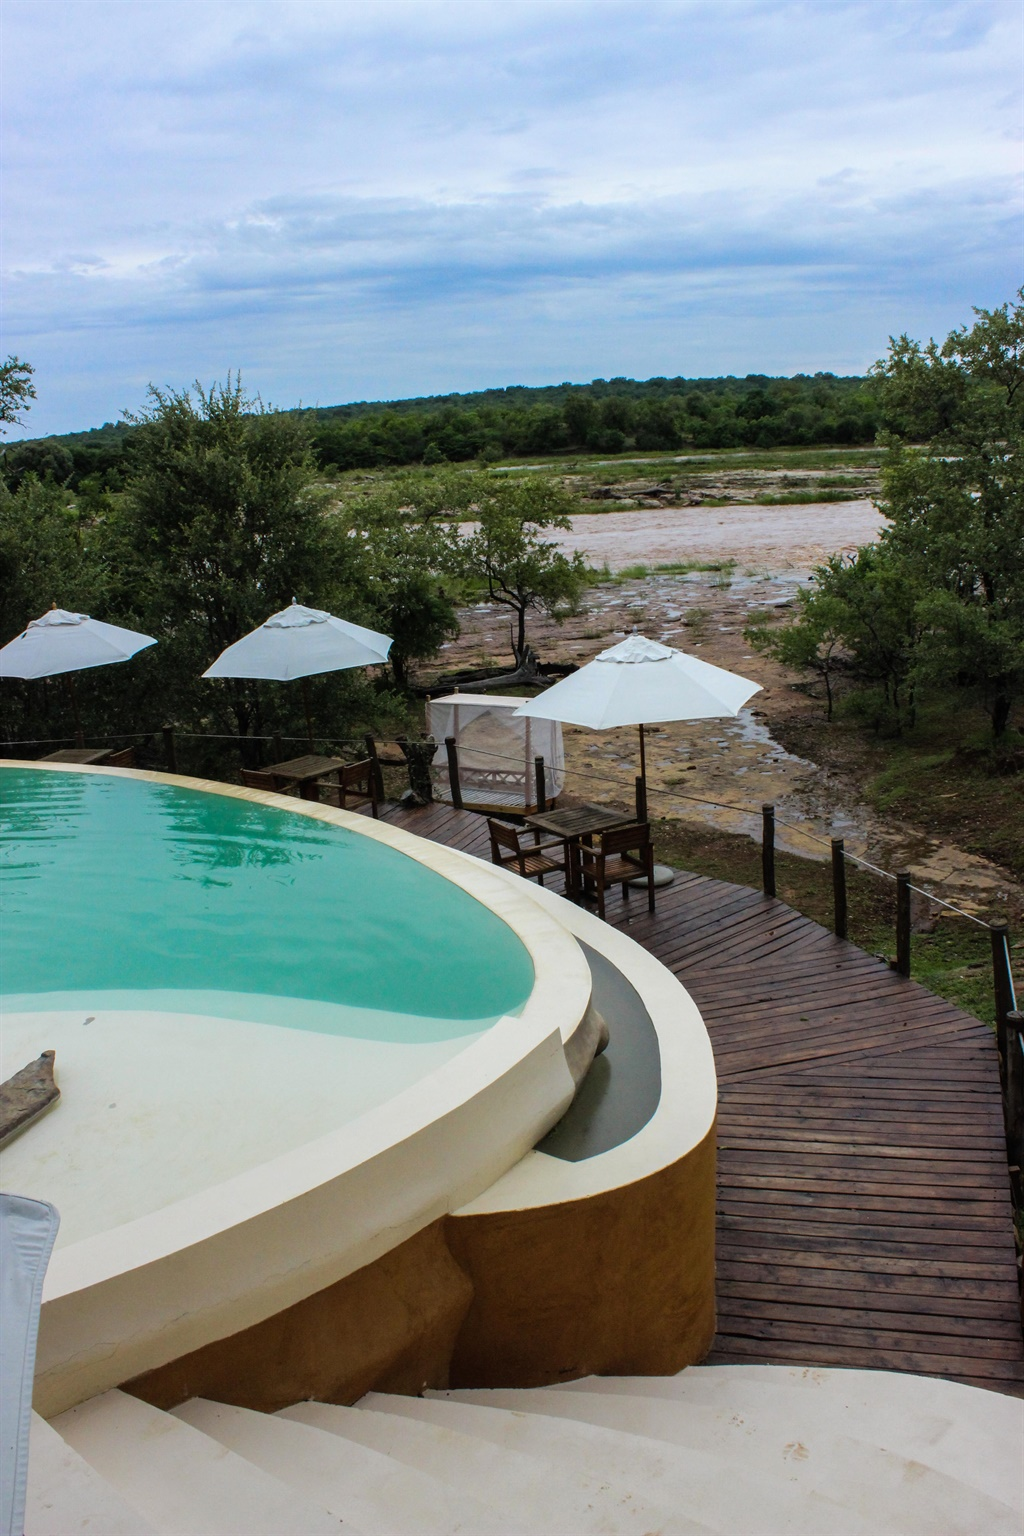 Pool looking out on the Ruaha River at Azura Selou